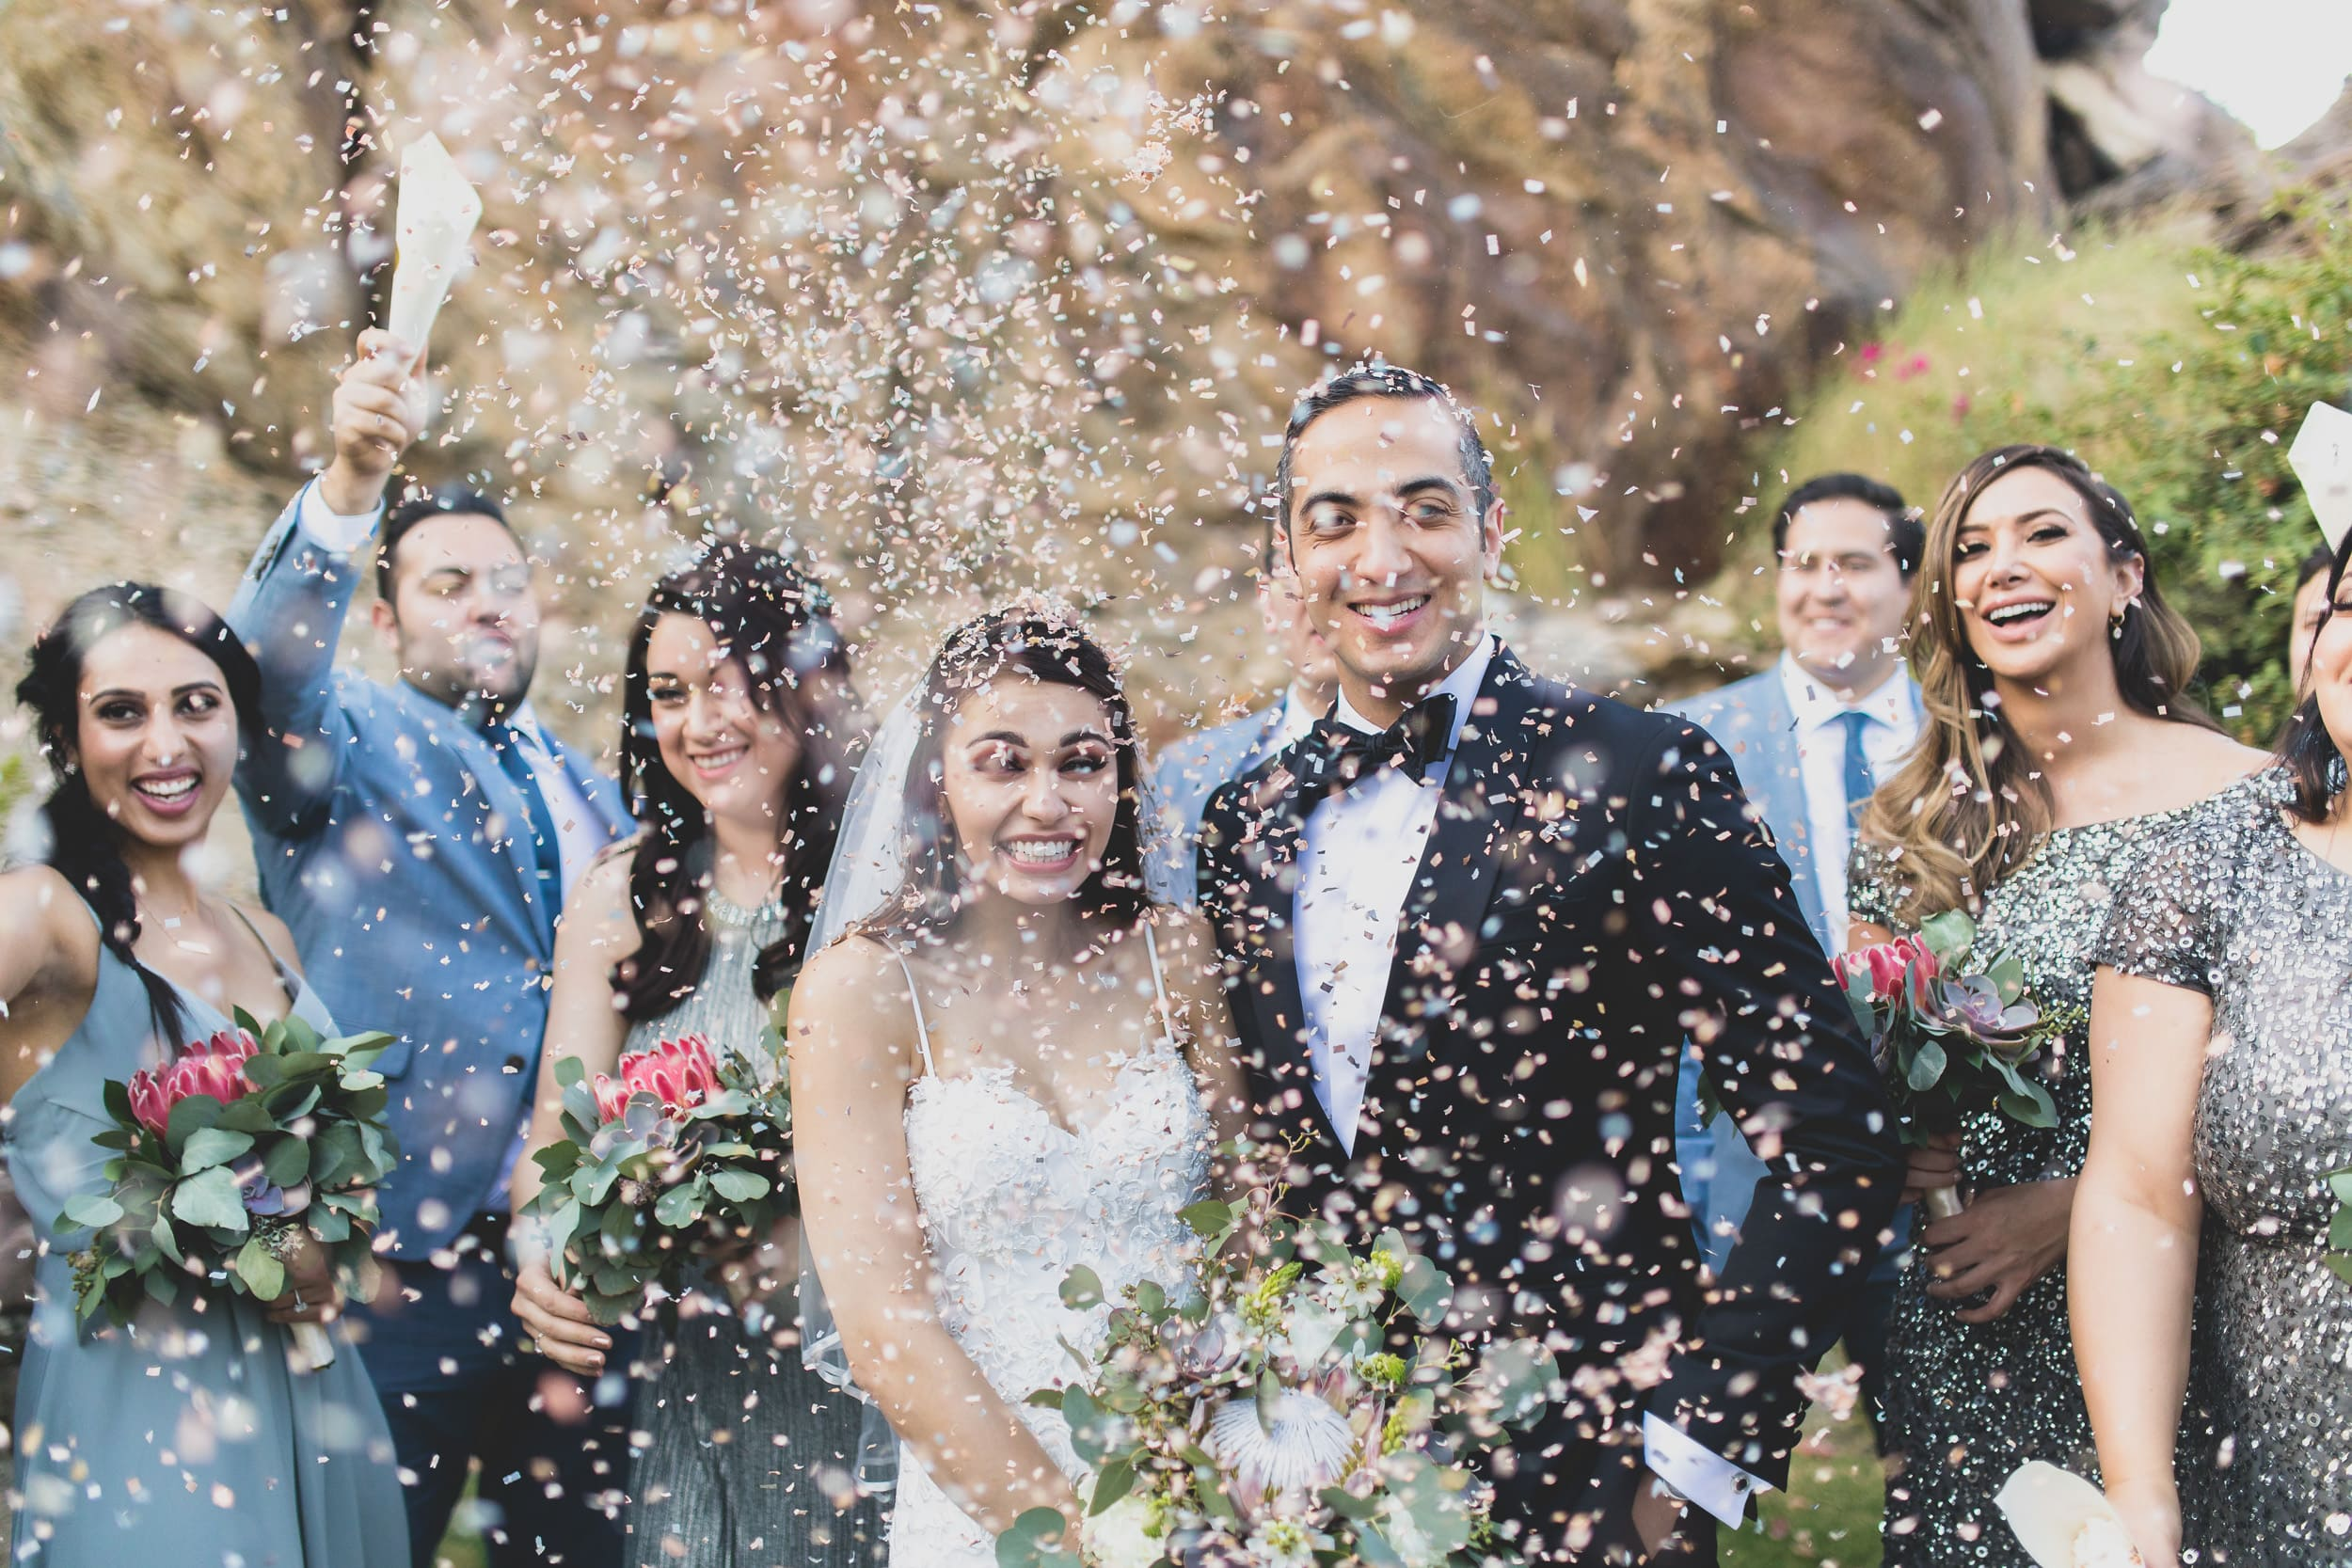 Bride and groom smiling with their bridal party as confetti rains down upon them.